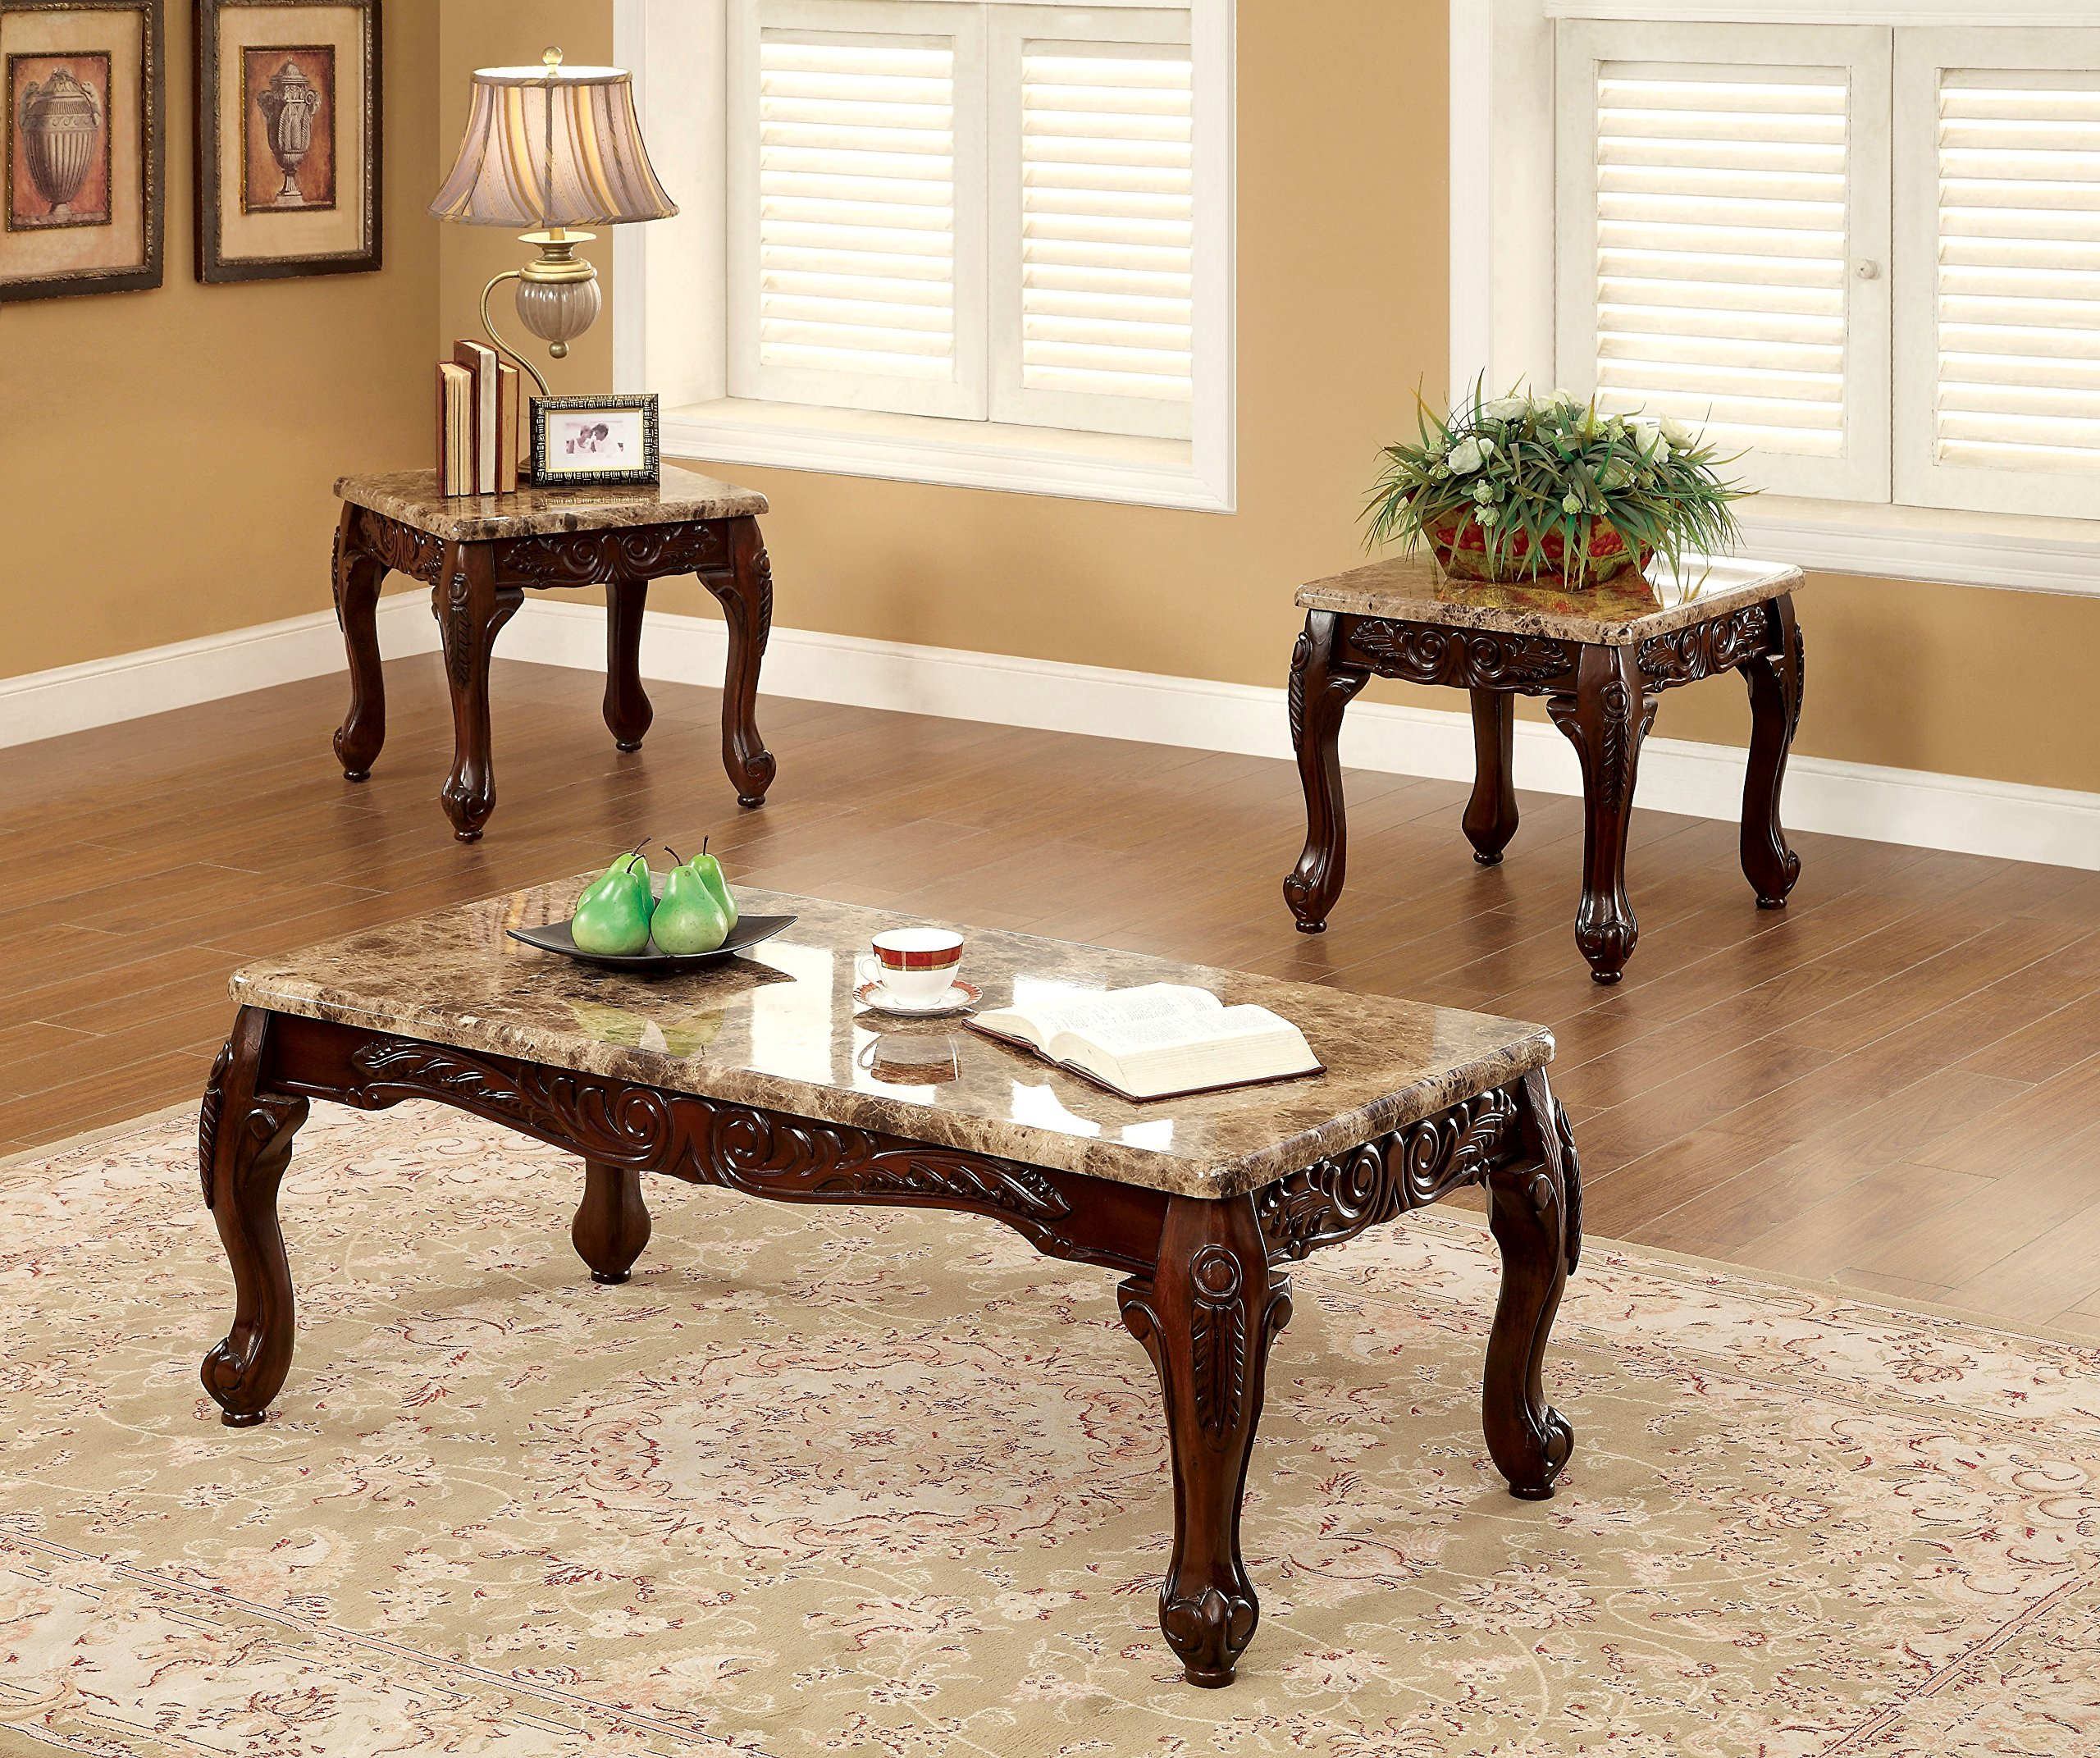 Furniture of America Beltran 3-Piece Traditional Faux Marble Top Accent Tables Set, Dark Oak by Furniture of America